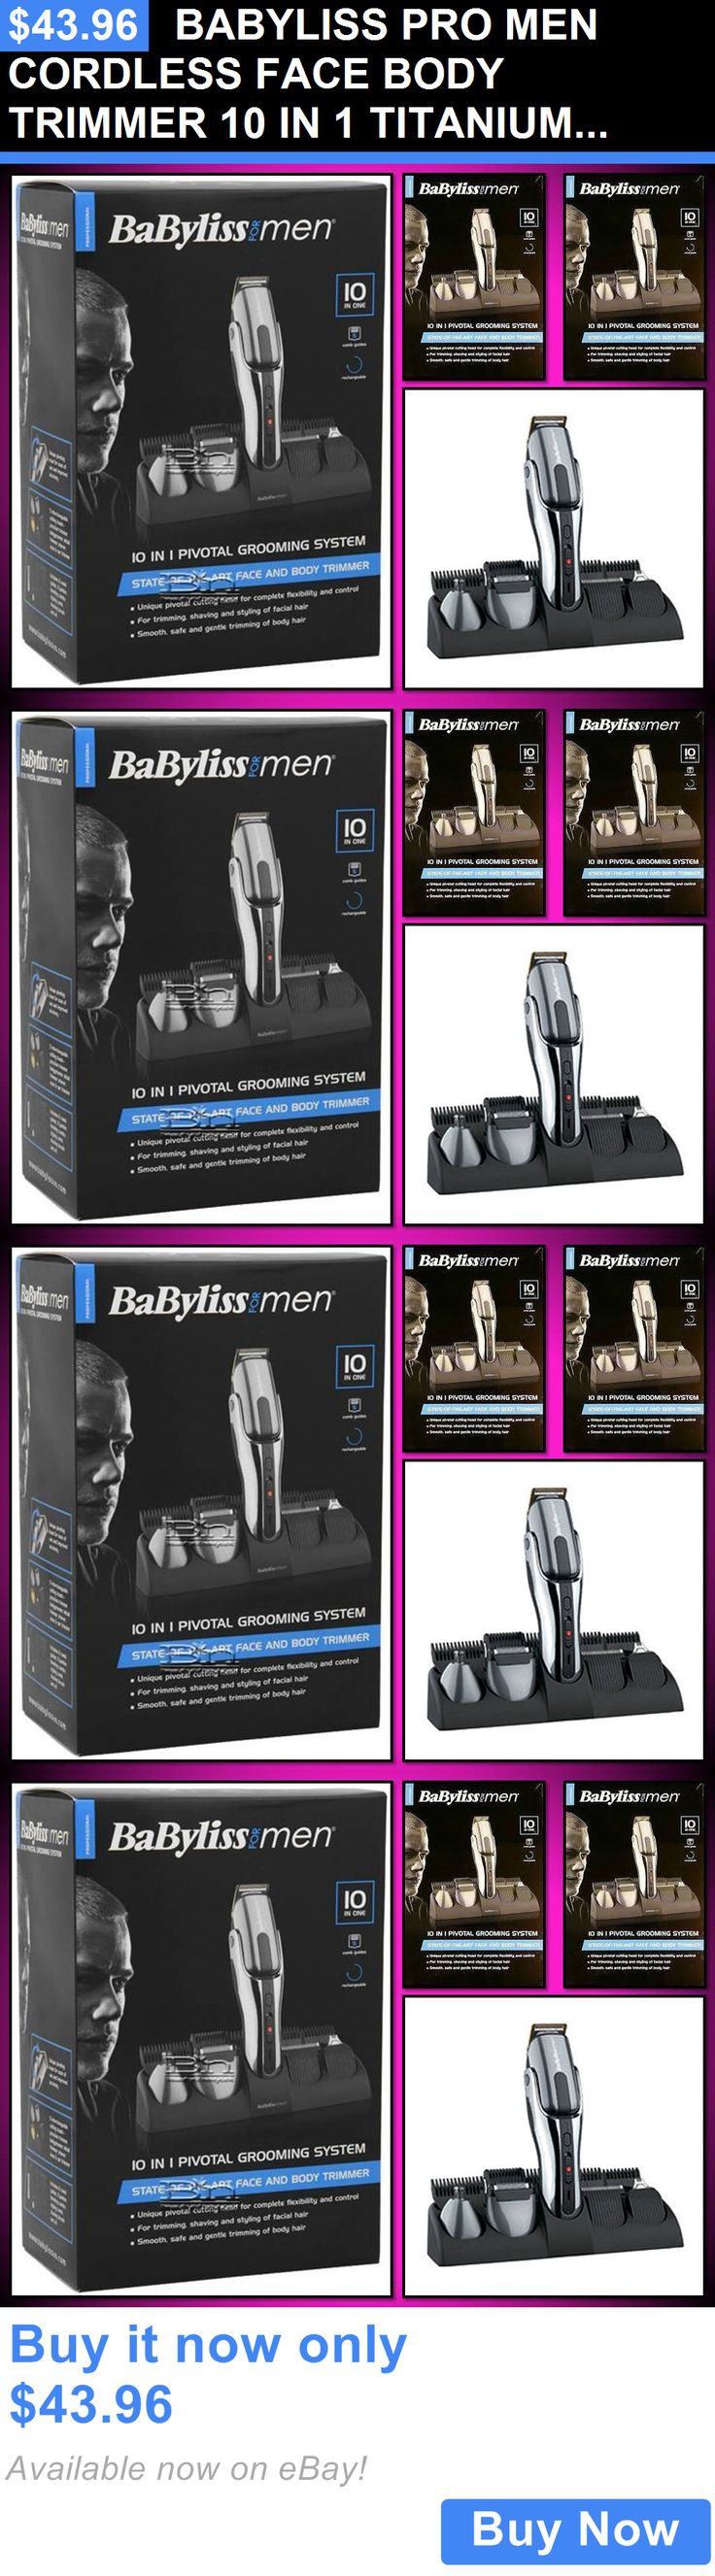 Clippers and Trimmers: Babyliss Pro Men Cordless Face Body Trimmer 10 In 1 Titanium Grooming System Kit BUY IT NOW ONLY: $43.96